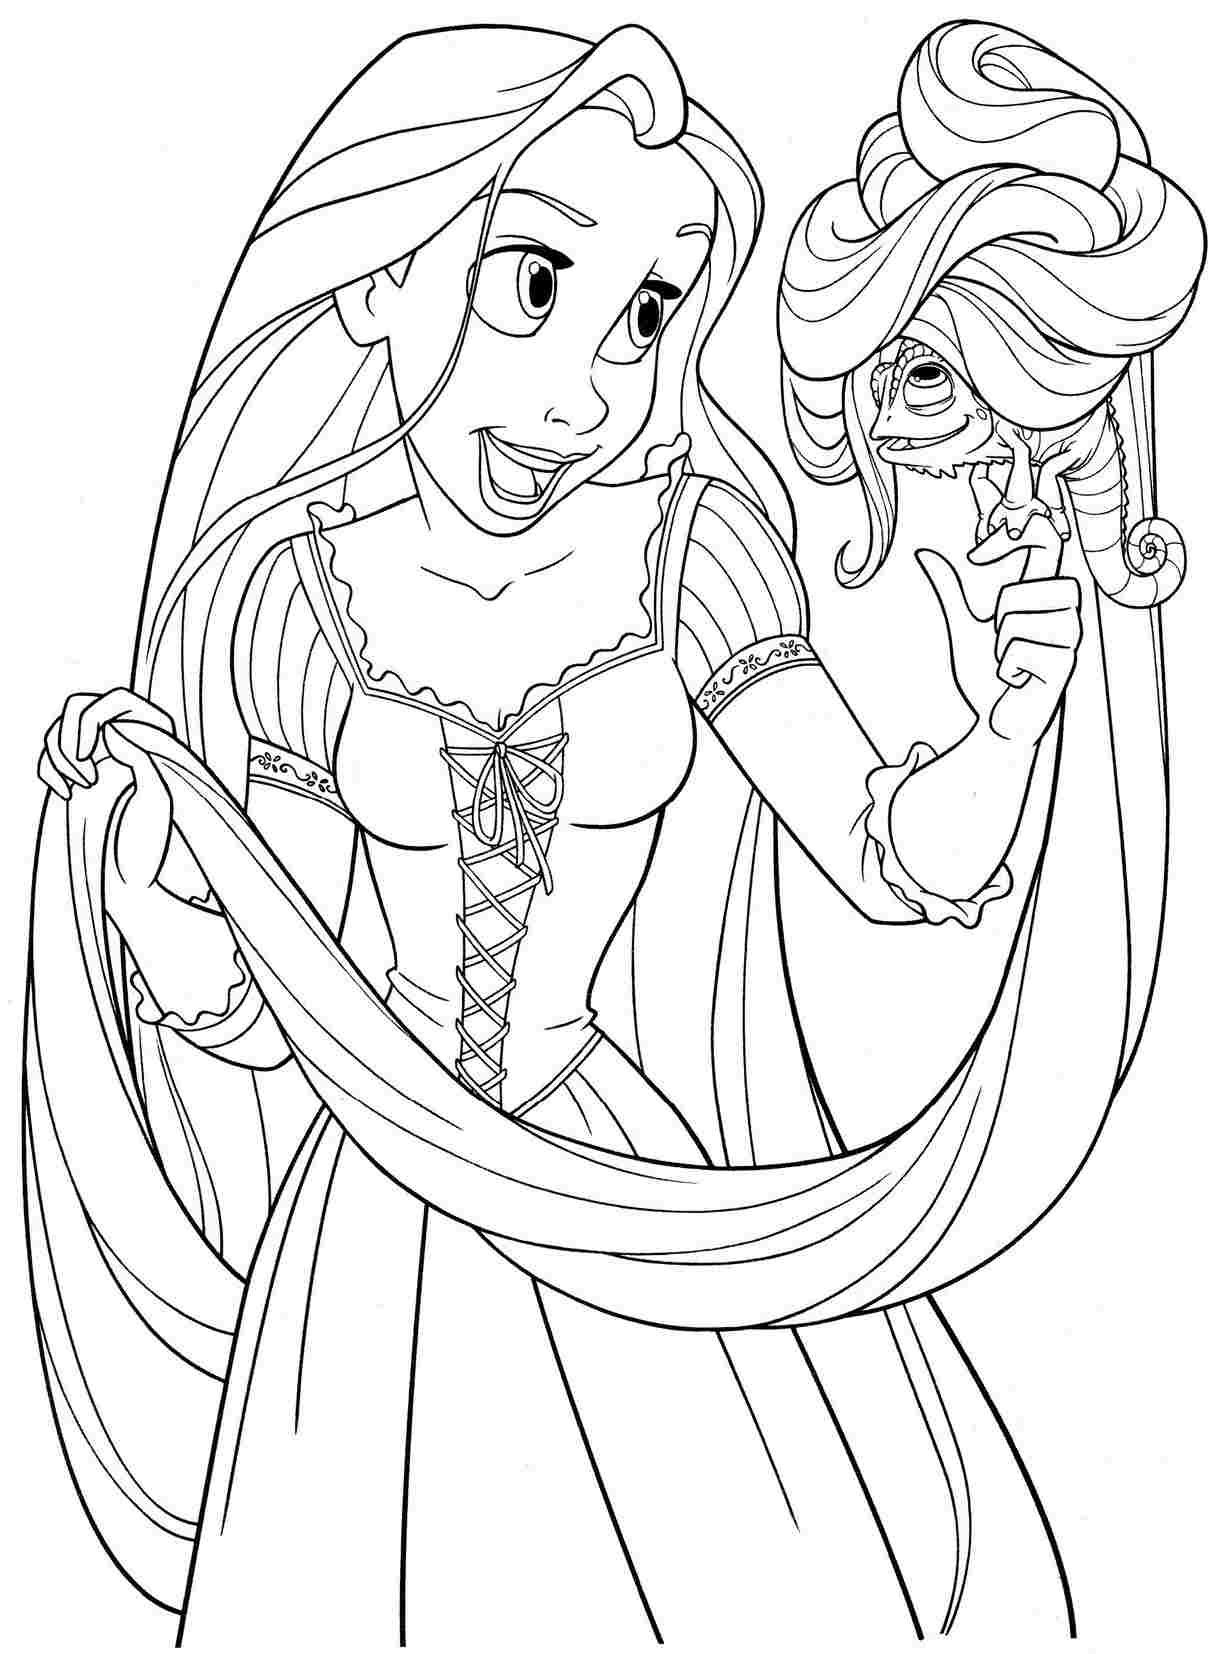 printable disney princess coloring pages disney princess pictures to print and colour neo coloring printable pages coloring disney princess